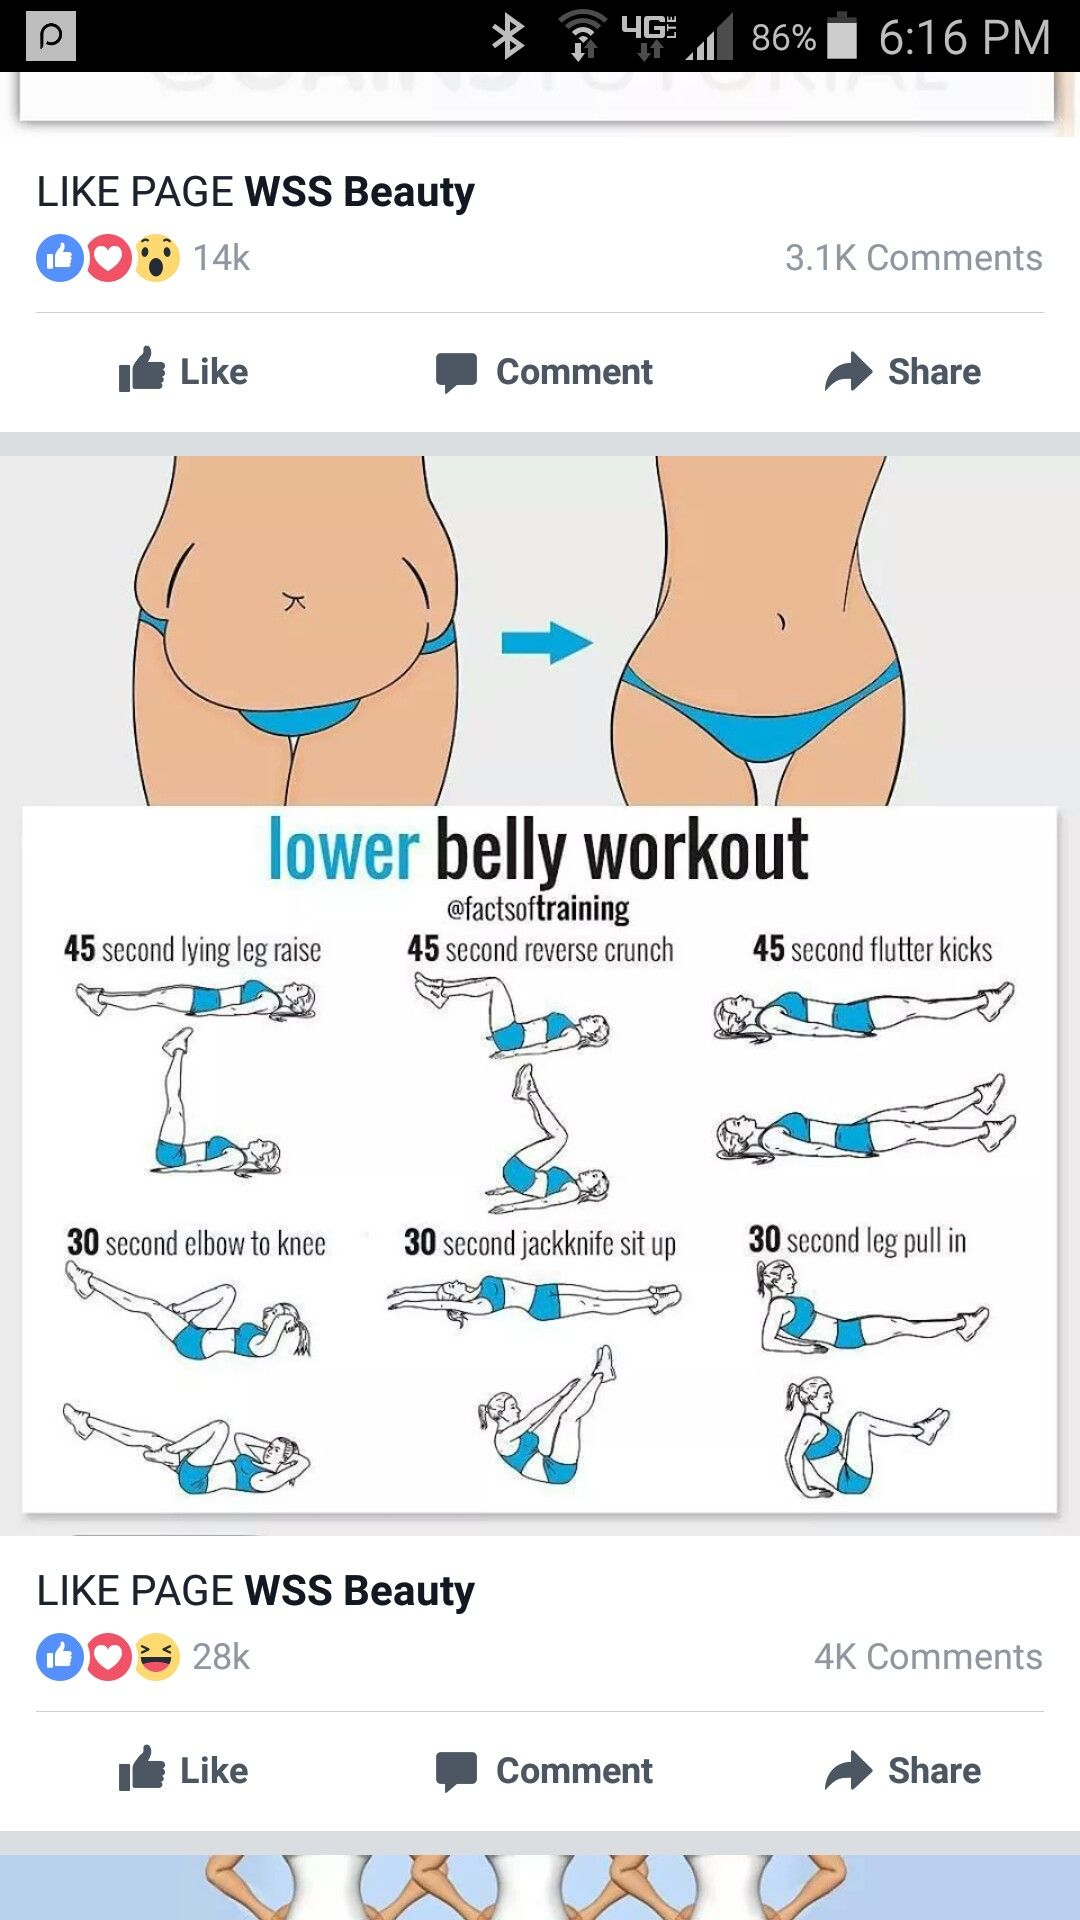 Pin by lua miranda on favs pinterest exercises workout and